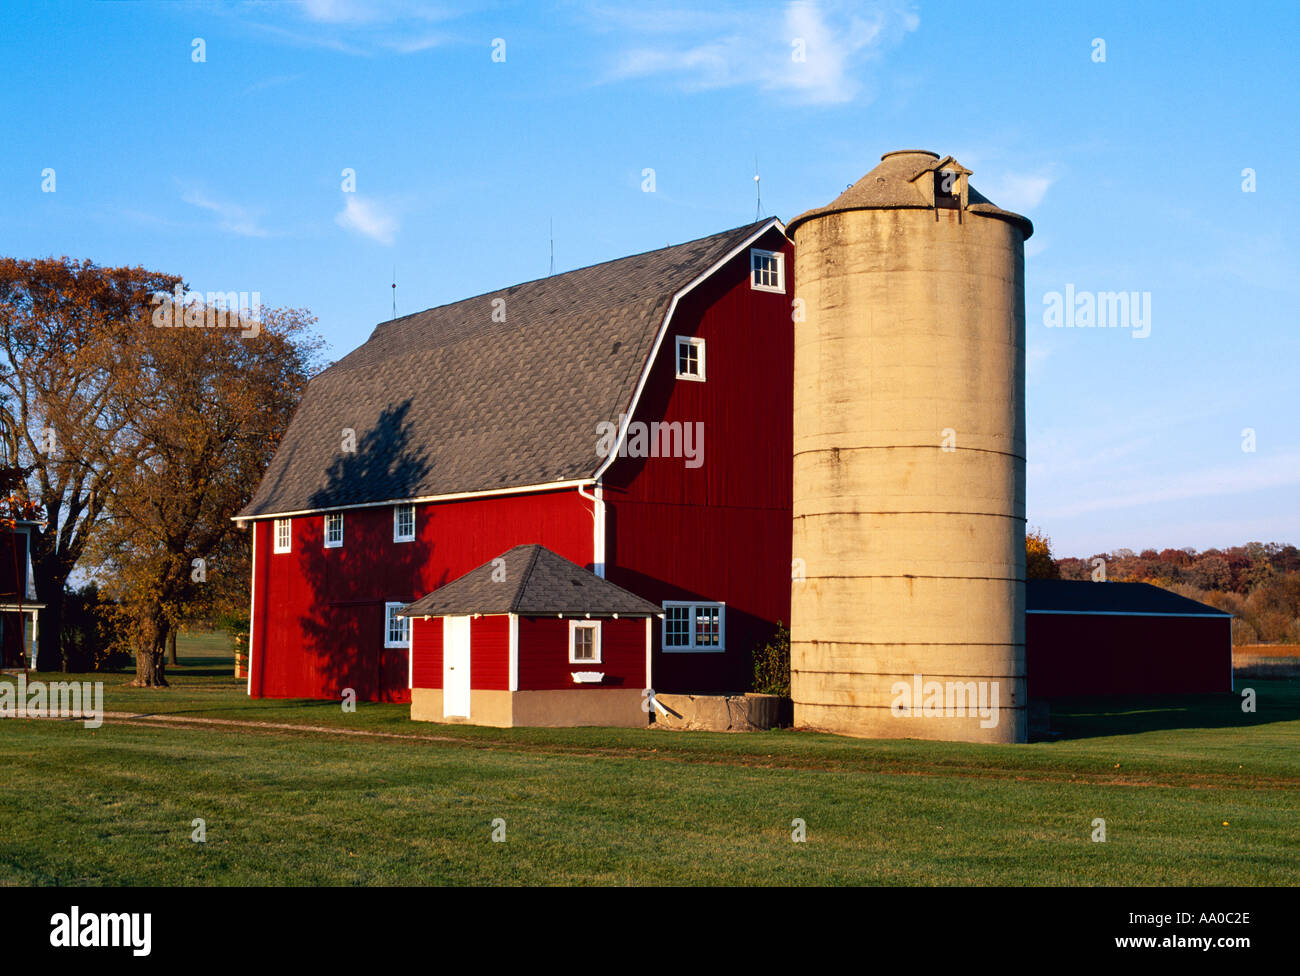 Cow on green pasture with red barn with grain silo royalty free stock - Agriculture Red Barn And Silo In Autumn With Green Lawn In The Foreground Waterford